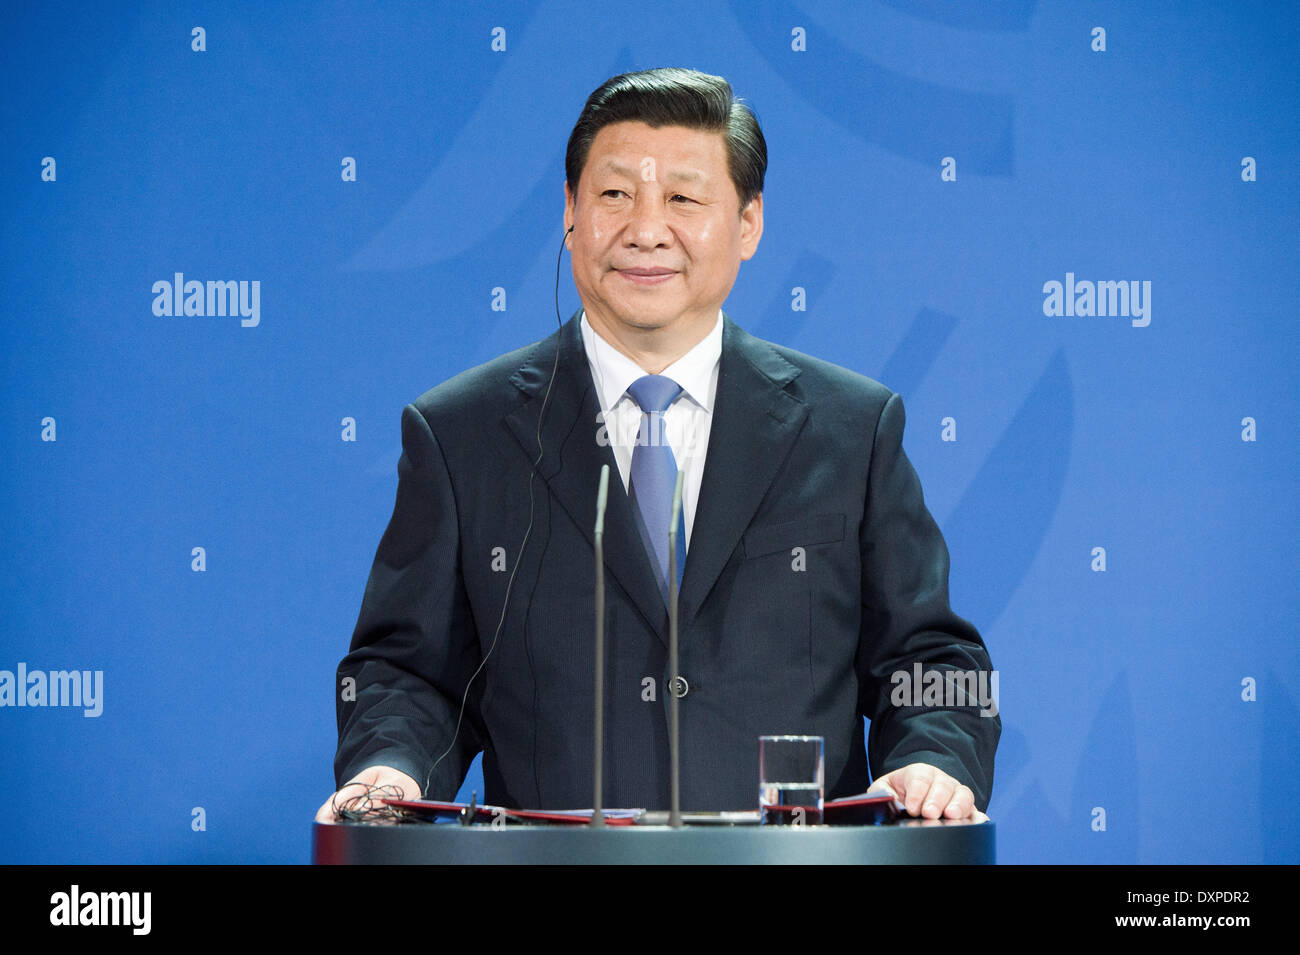 Berlin, Germany. 28th Mar, 2014. Chinese President Xi Jinping looks on during a press conference at the chancellery in Berlin, Germany, 28 March 2014. It is the first state visit of a Chinese President to Germany in eight years. Photo: MAURIZIO GAMBARINI/dpa/Alamy Live News - Stock Image